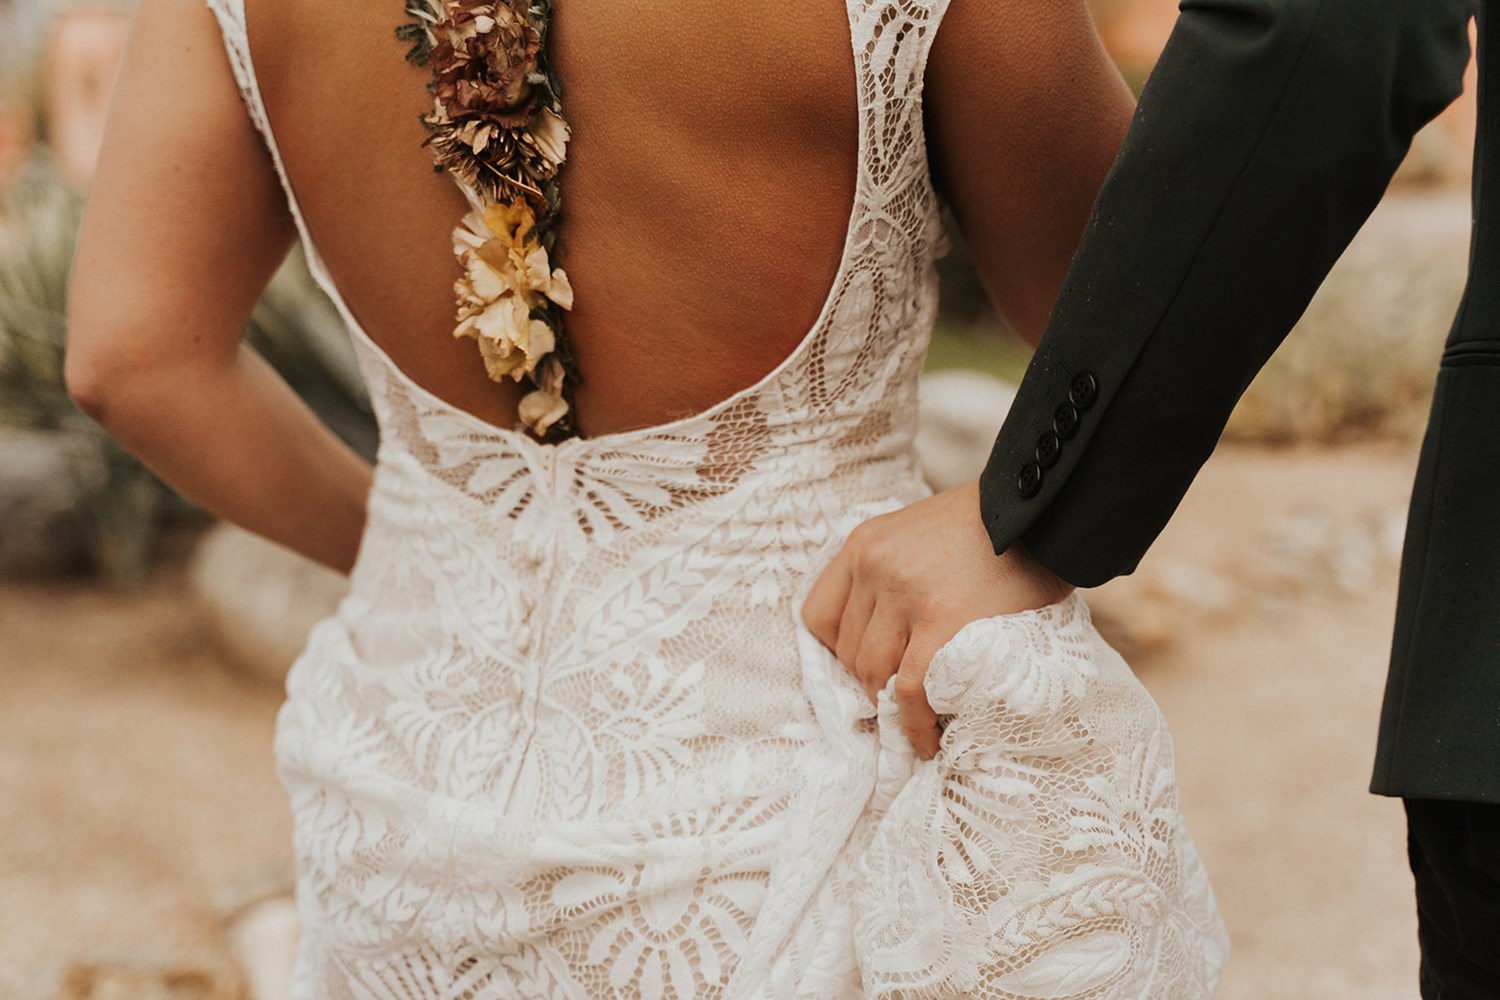 desertshootout_cait_cophoto-0123.jpg Bohemian Palm Springs Wedding Inspiration with a Modern Twist